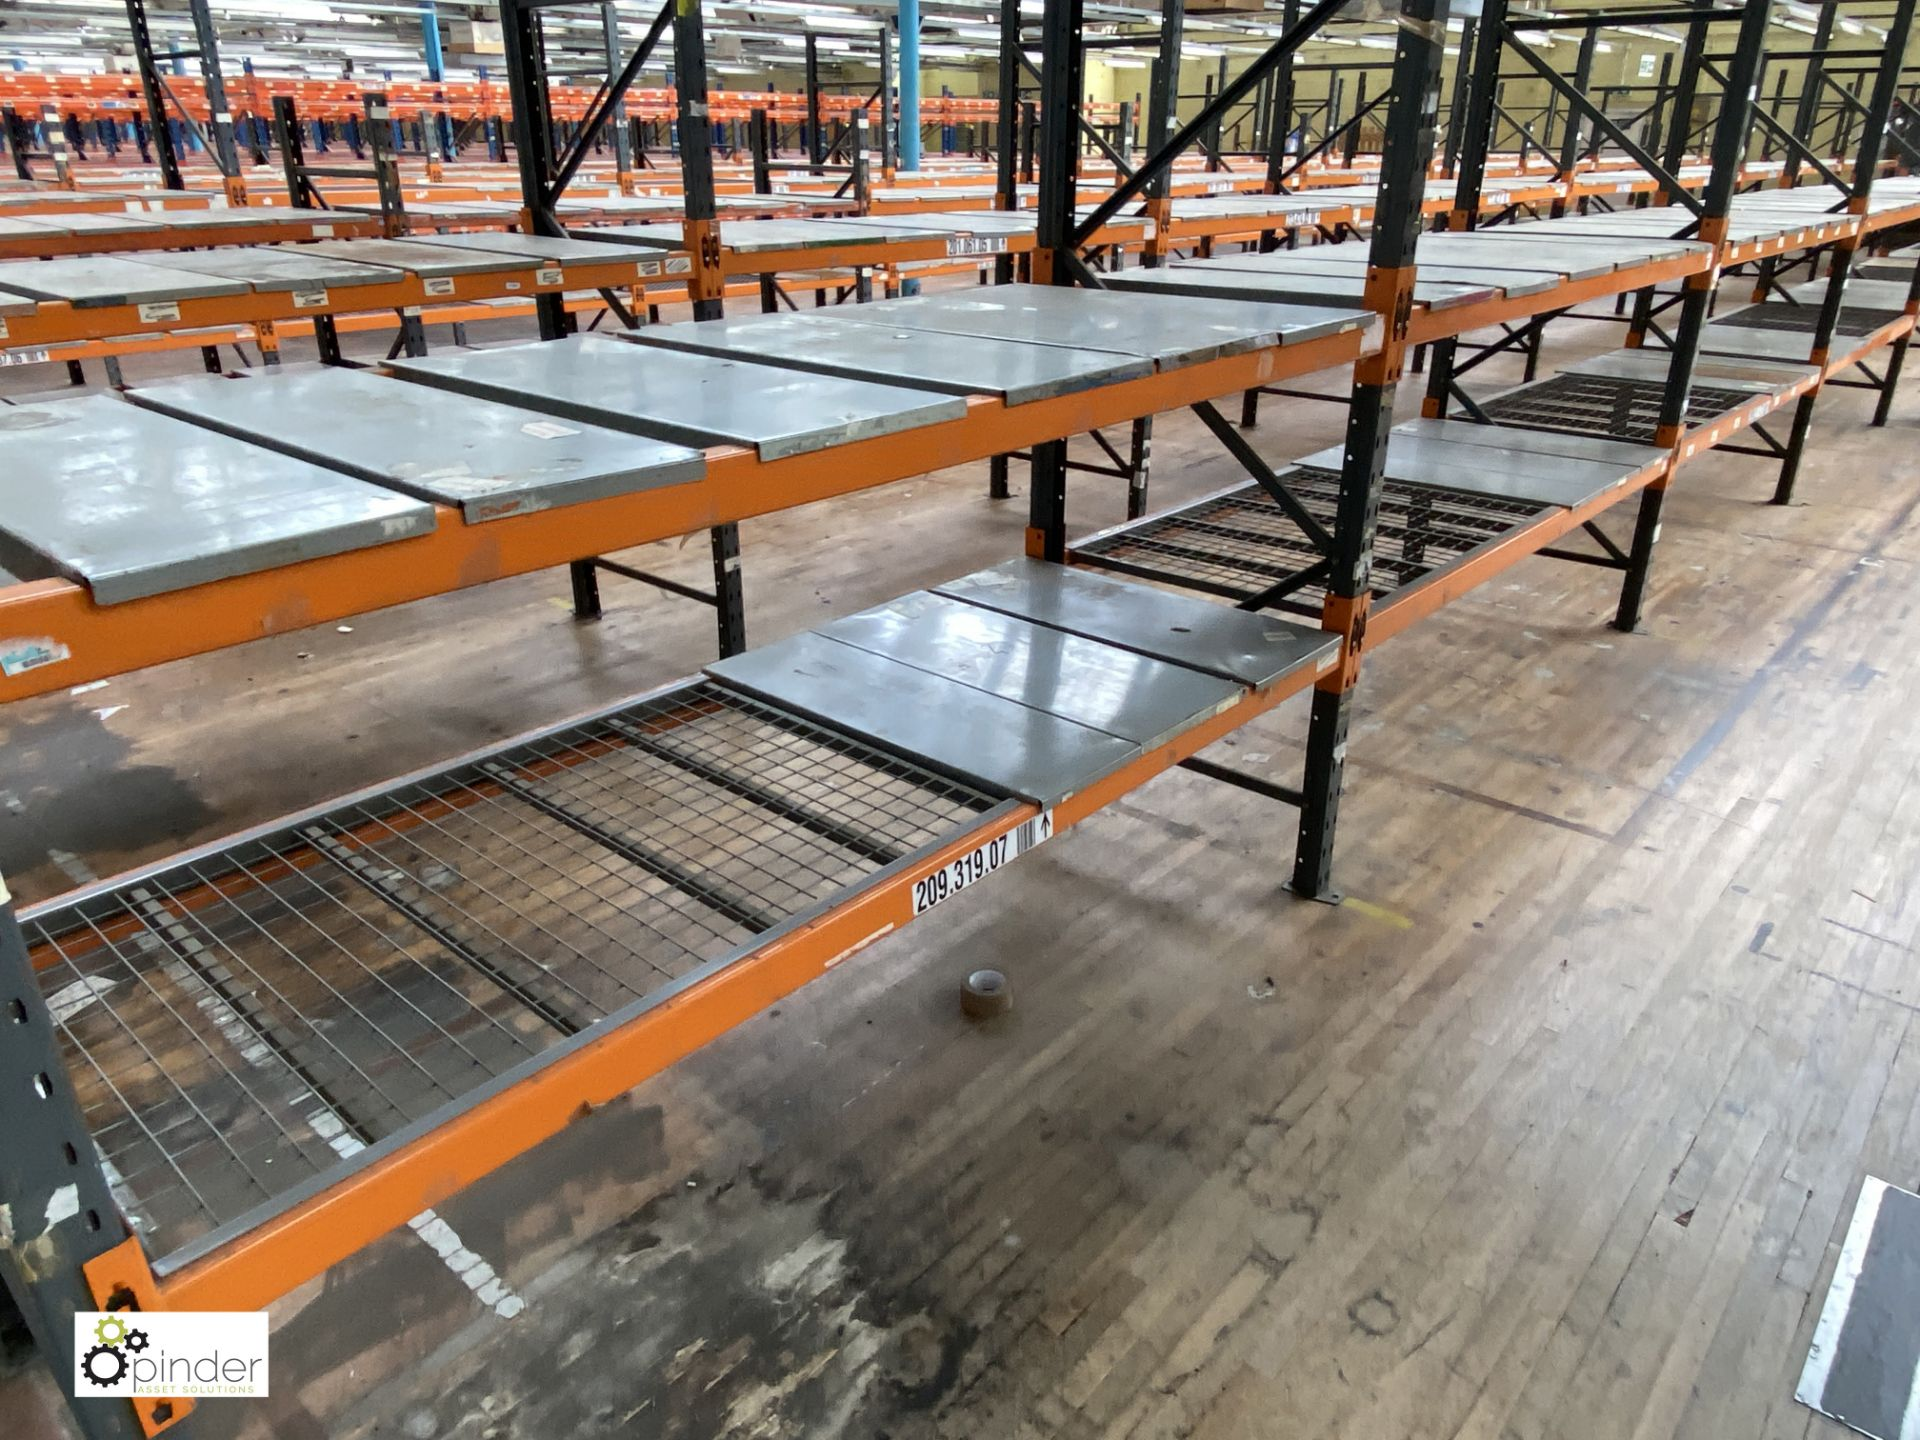 10 bays Dexion Speedlock boltless Racking, comprising 11 uprights 2440mm x 910mm, 40 beams 2450mm, - Image 3 of 4